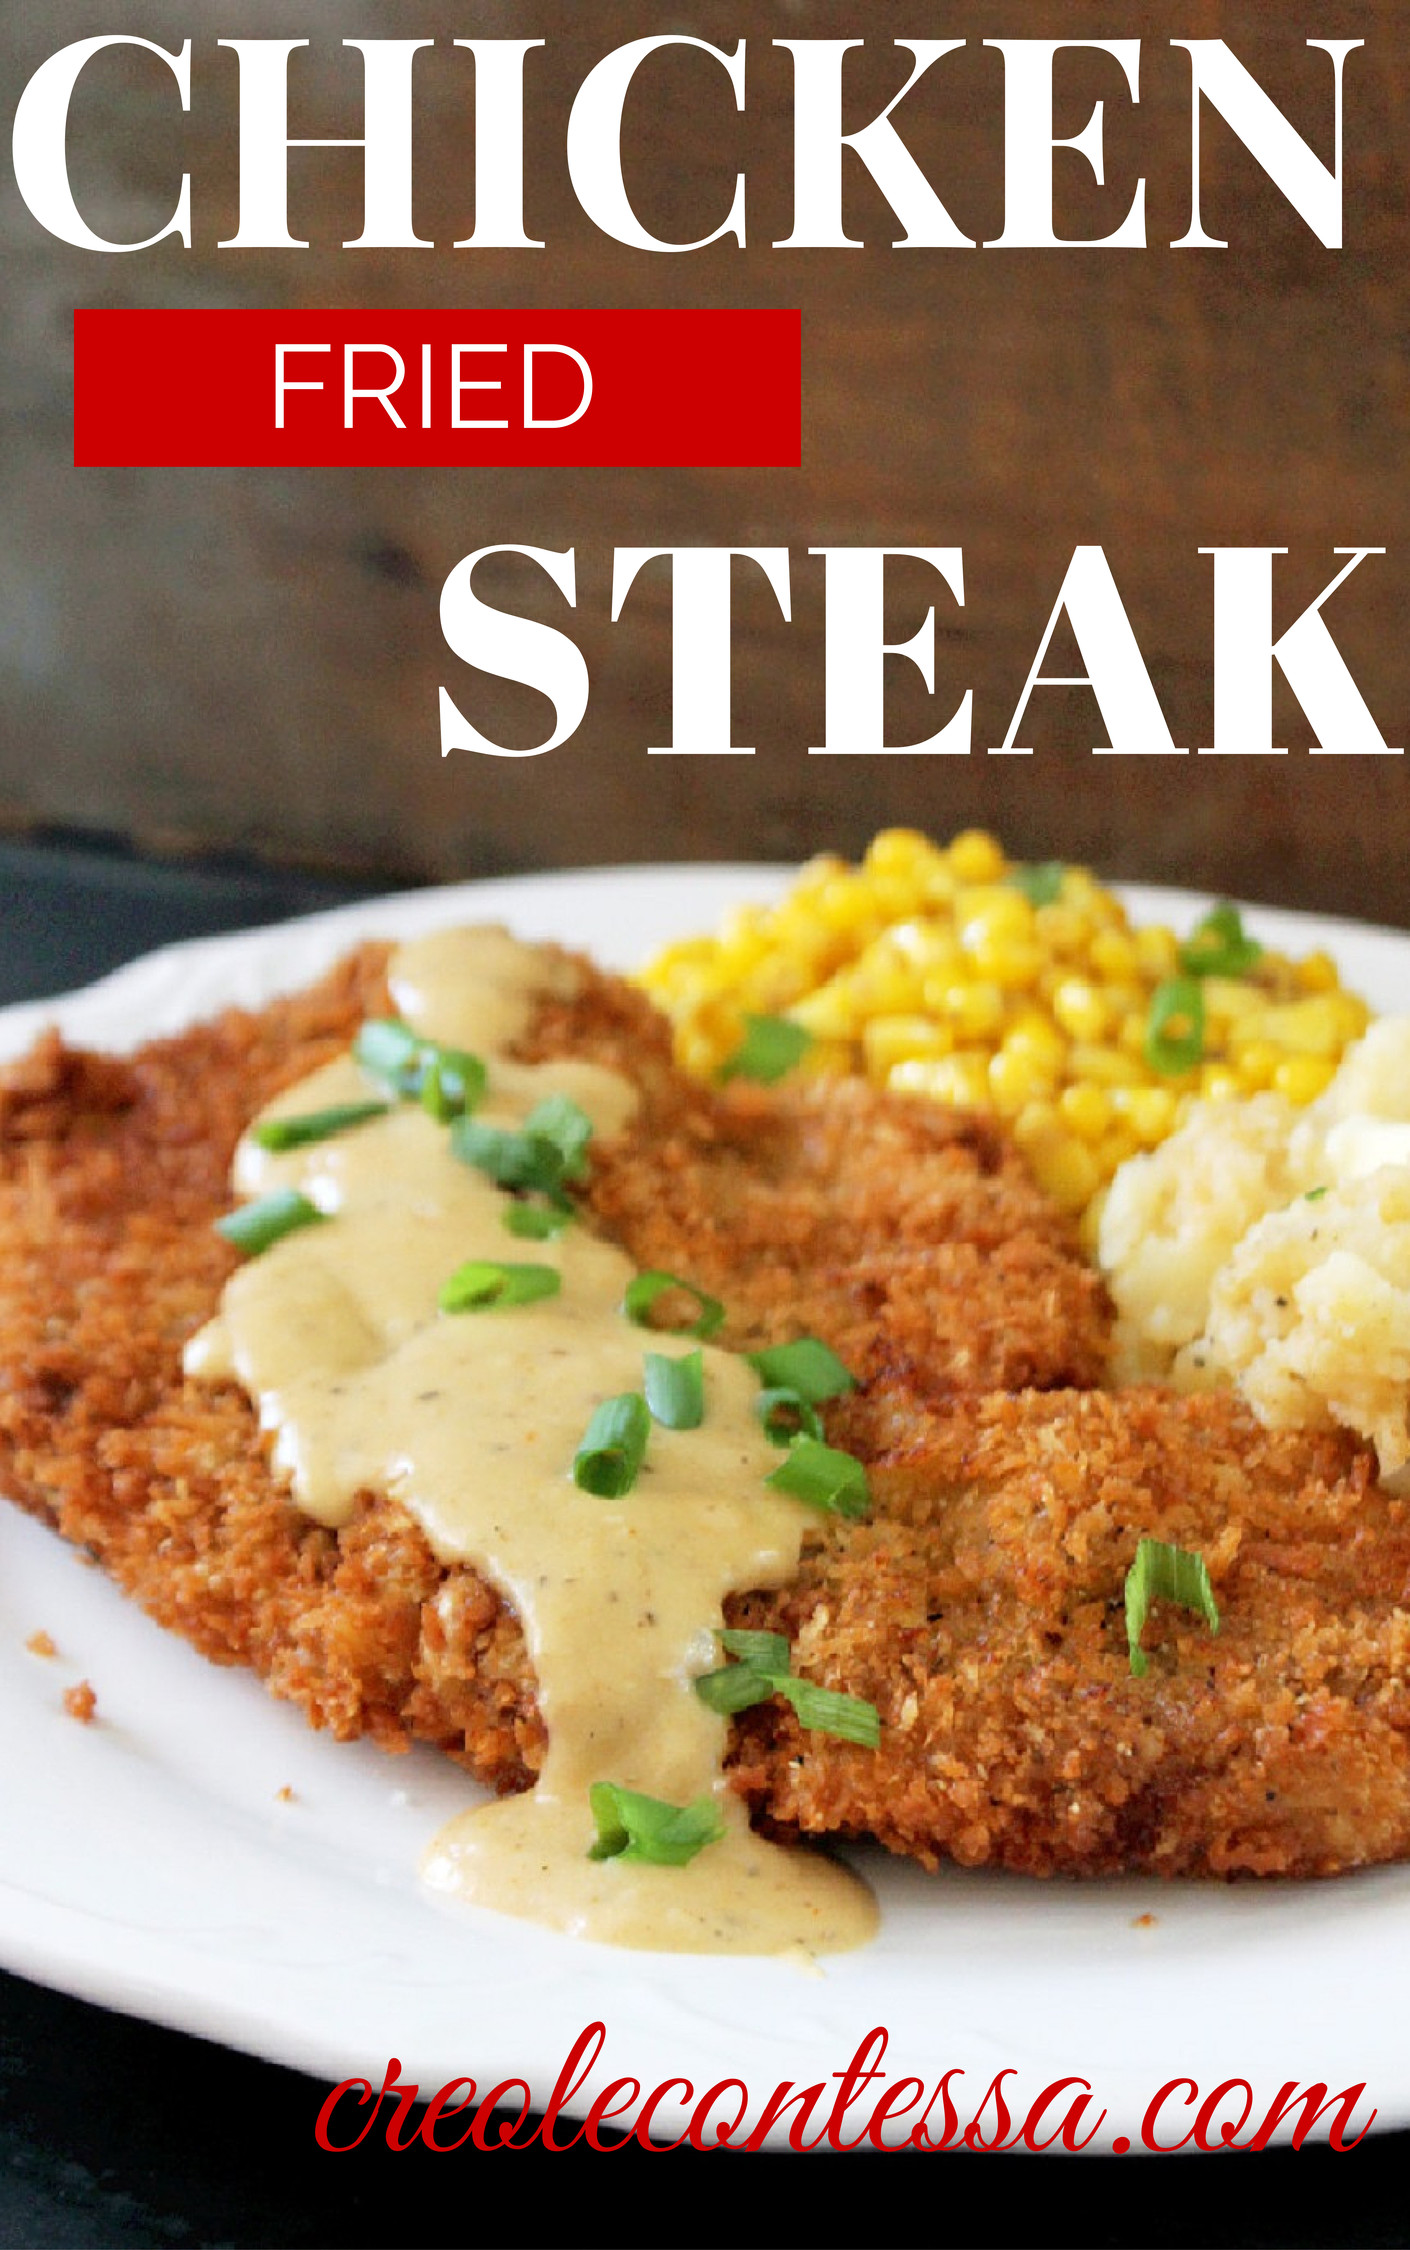 Chicken Fried Steak with Creole Corn & Creamy Mashed Potatoes-Creole Contessa